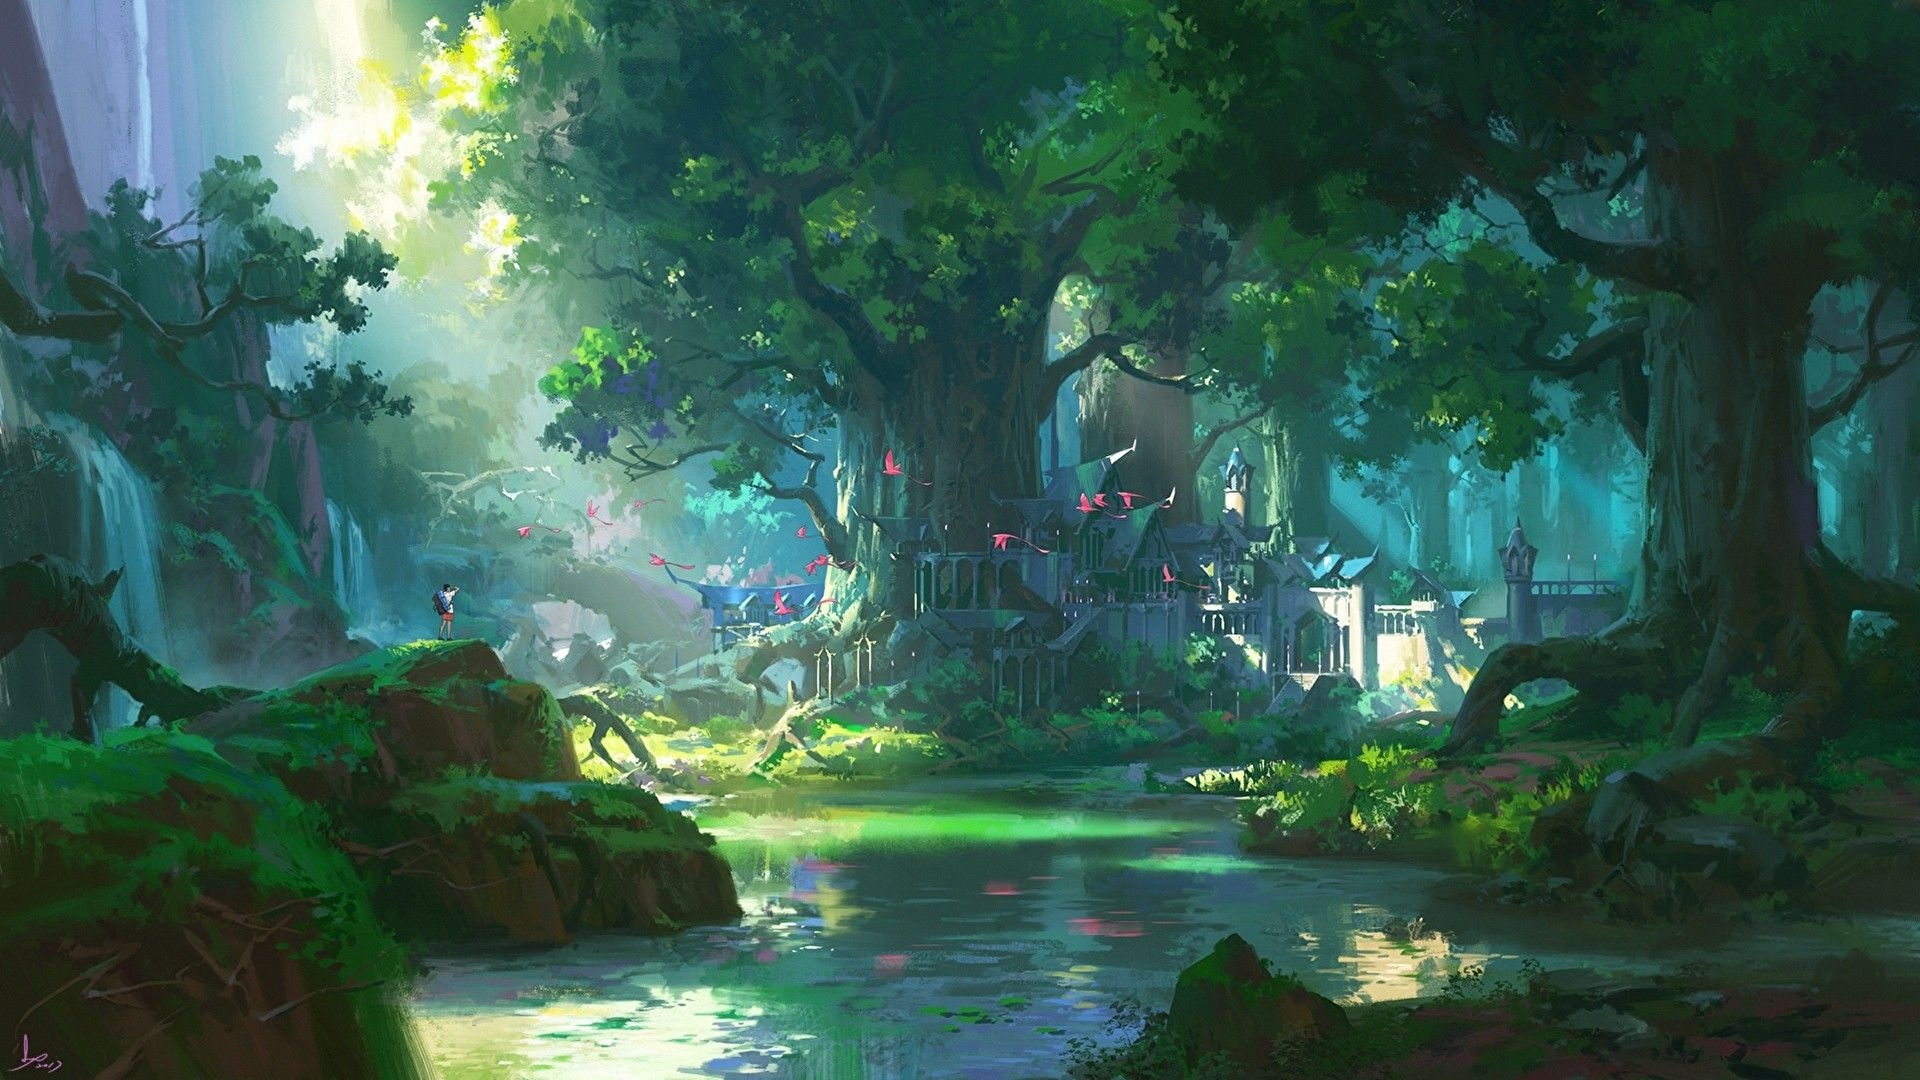 Anime Forest Background Wallpaper HD